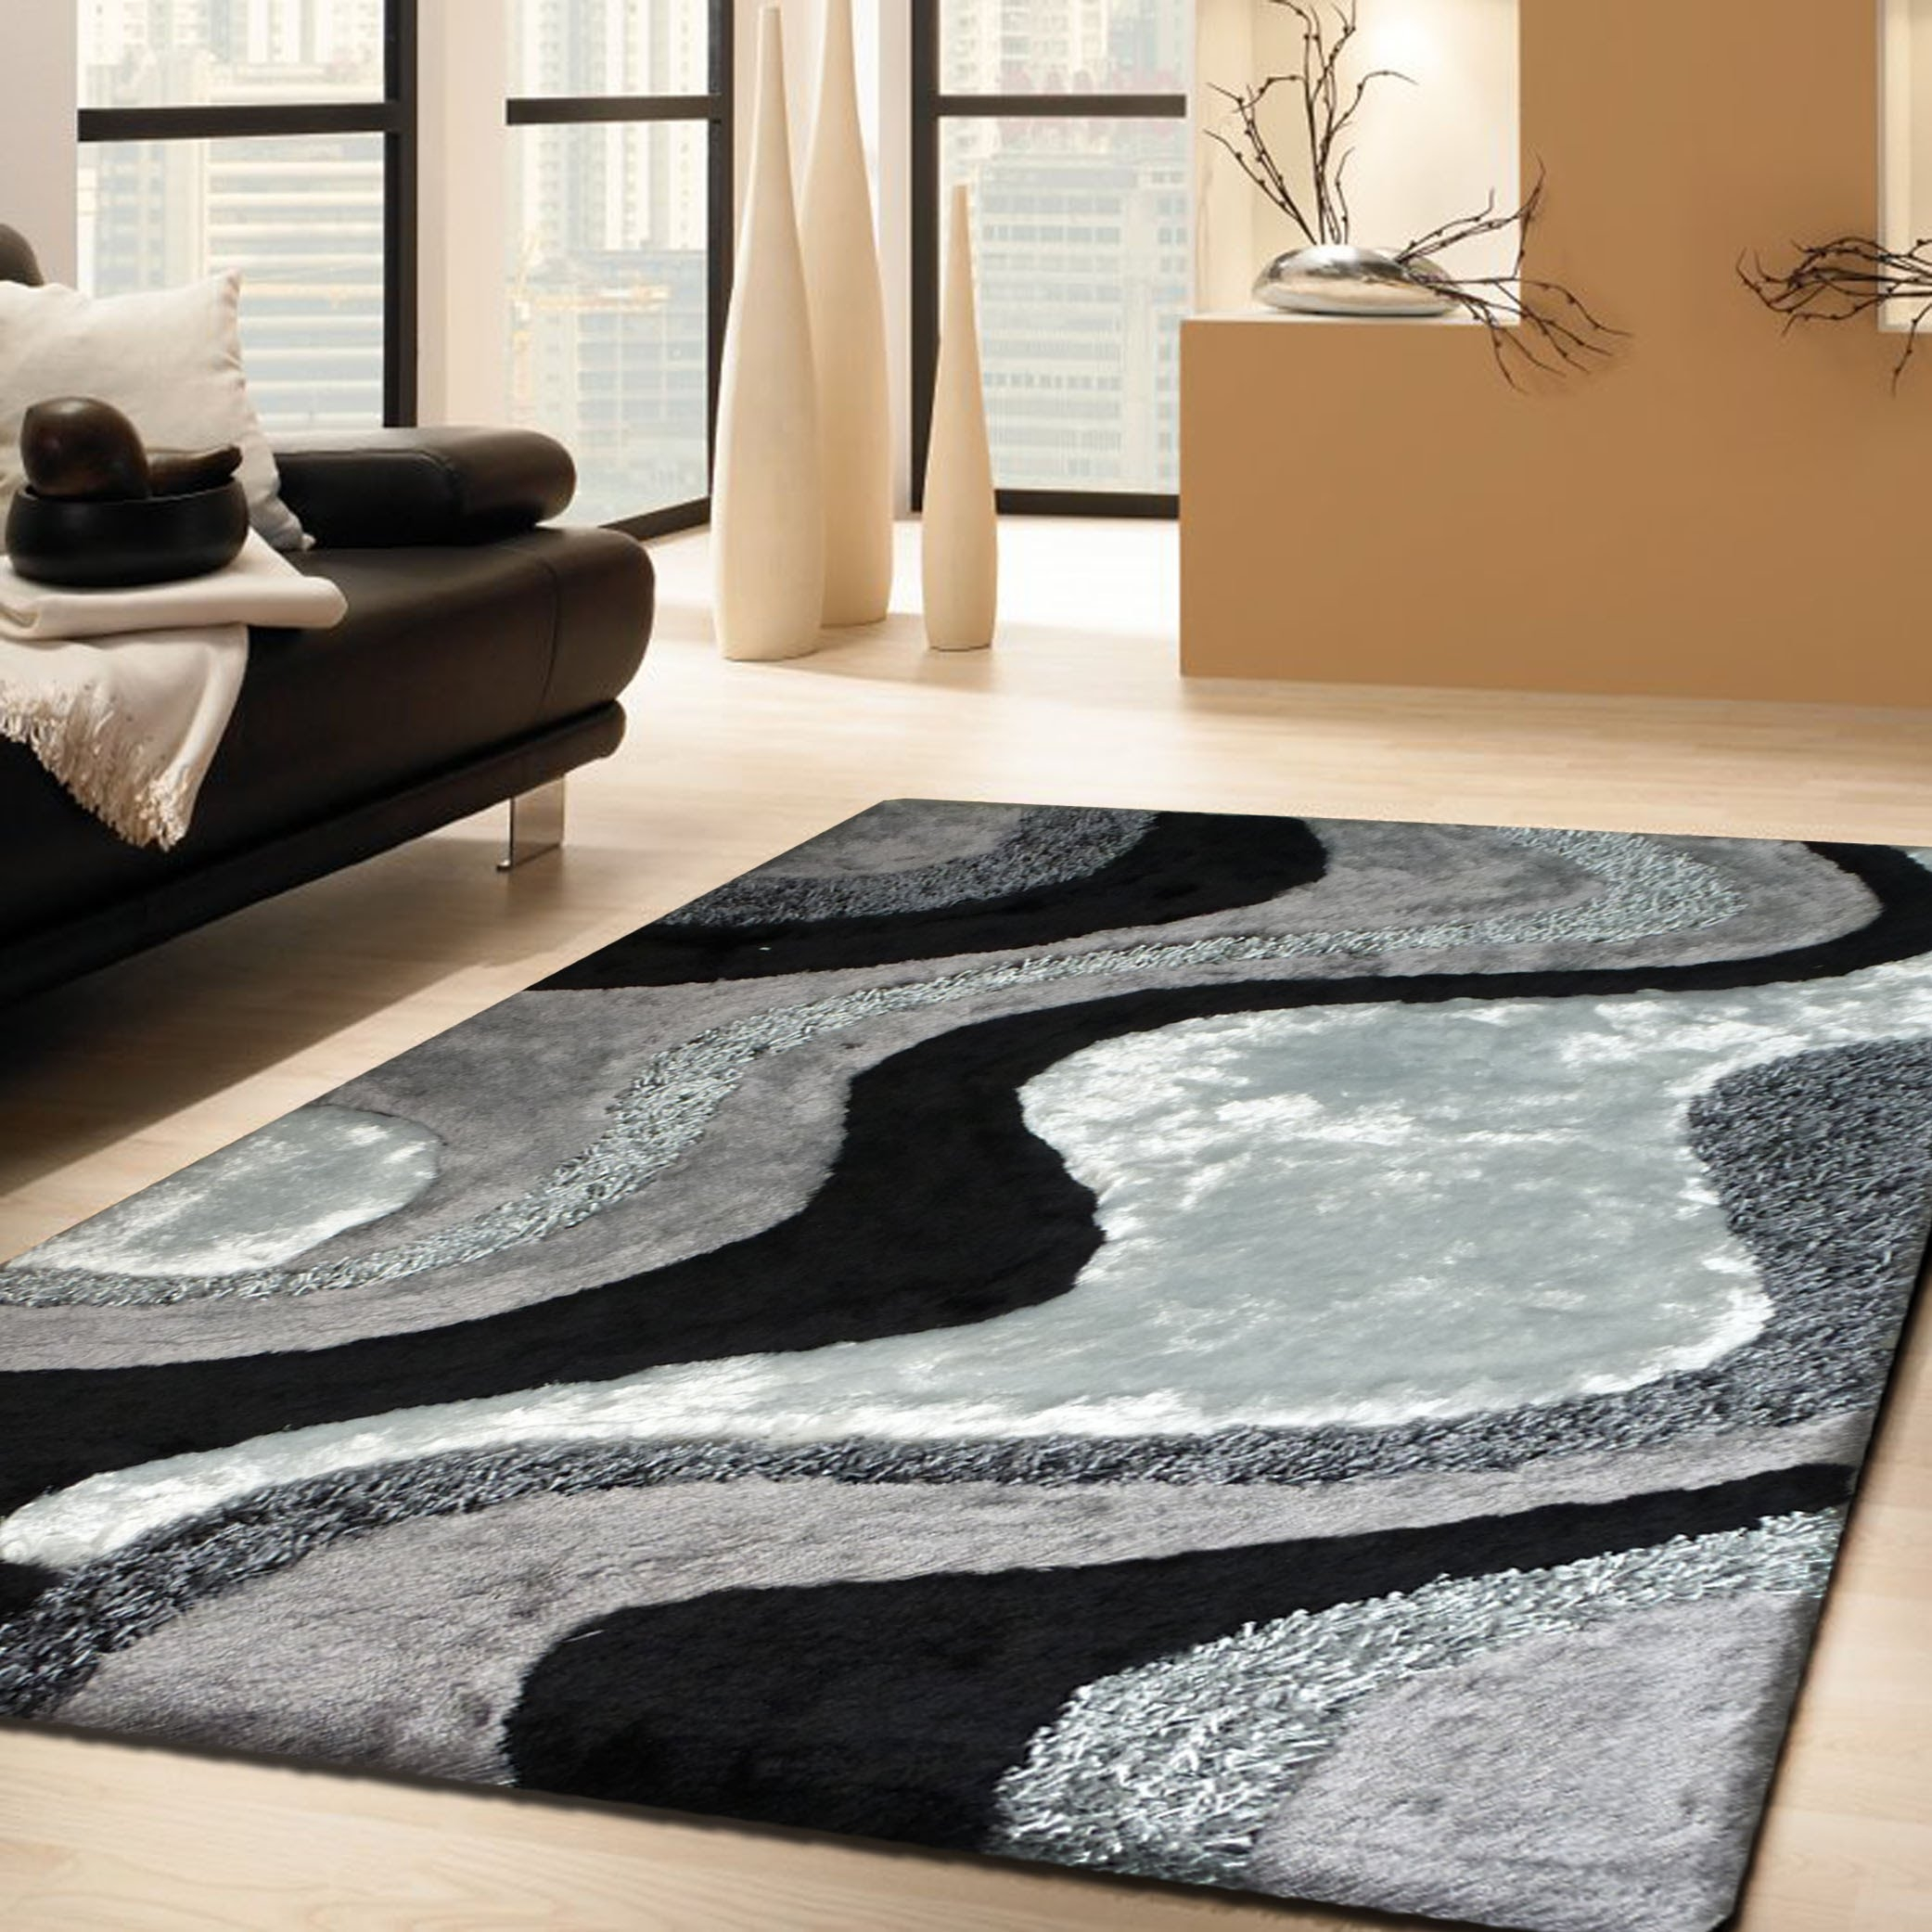 Luxurious Handmade Area Rug For Indoor Living Room In Grey With Pertaining To Cream And Black Carpets (Image 14 of 15)